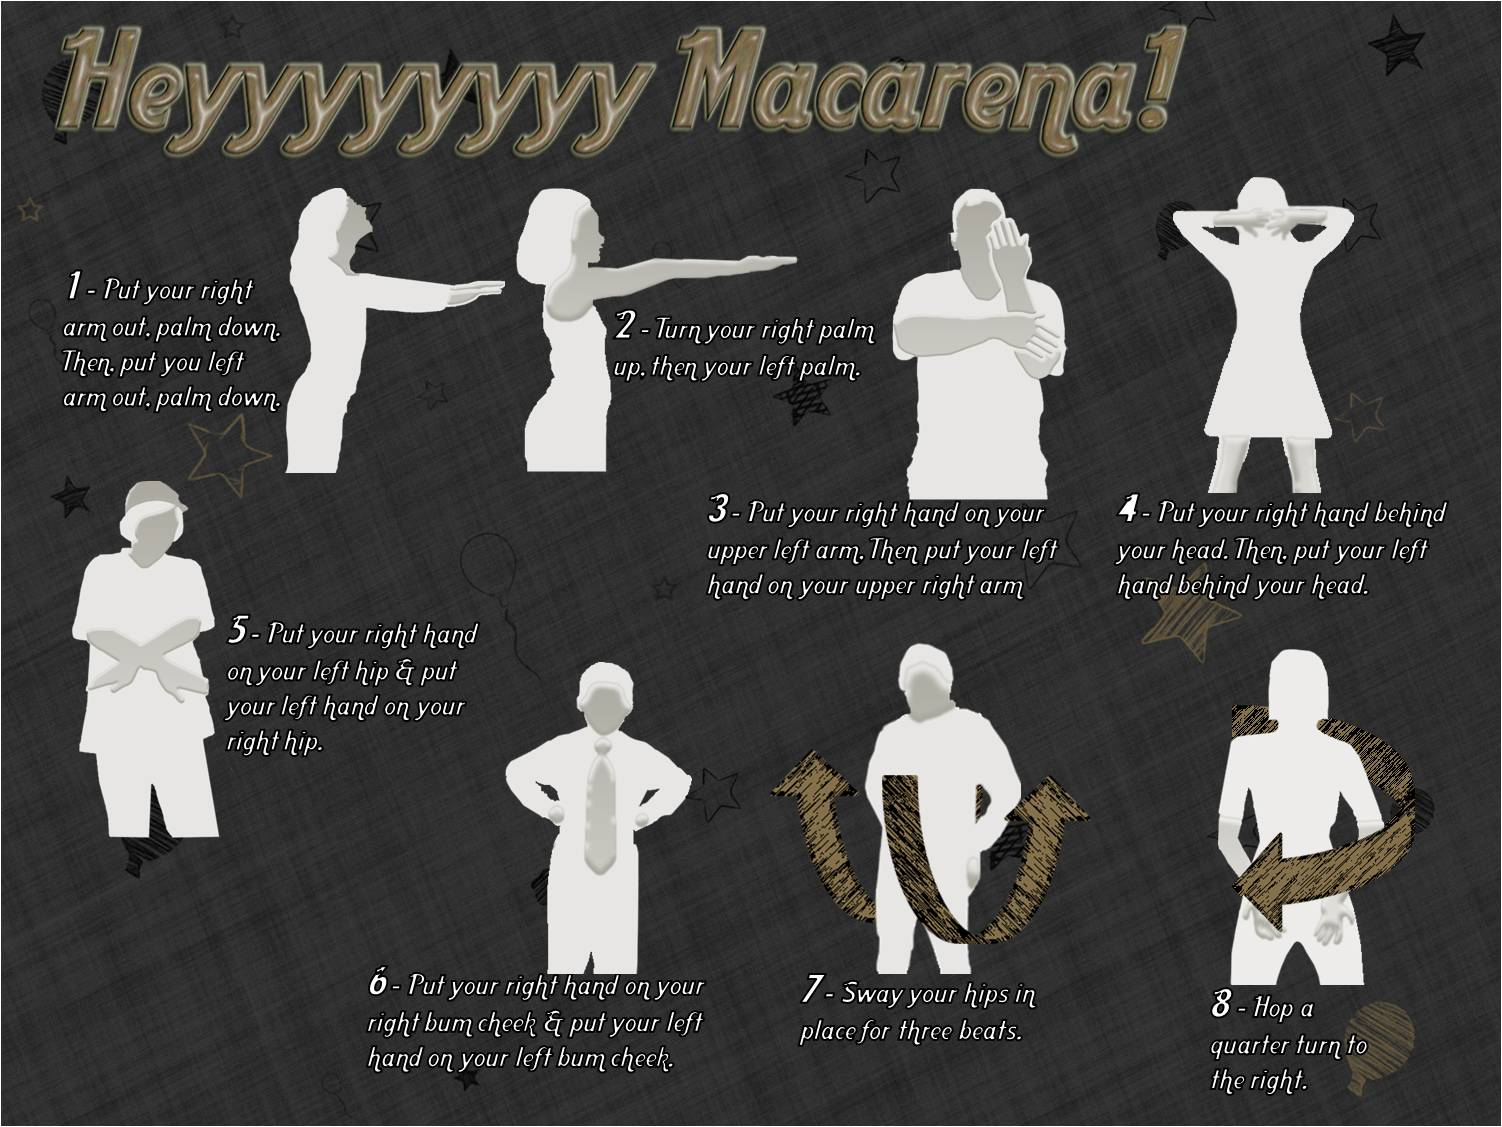 Hey Macarena Dance